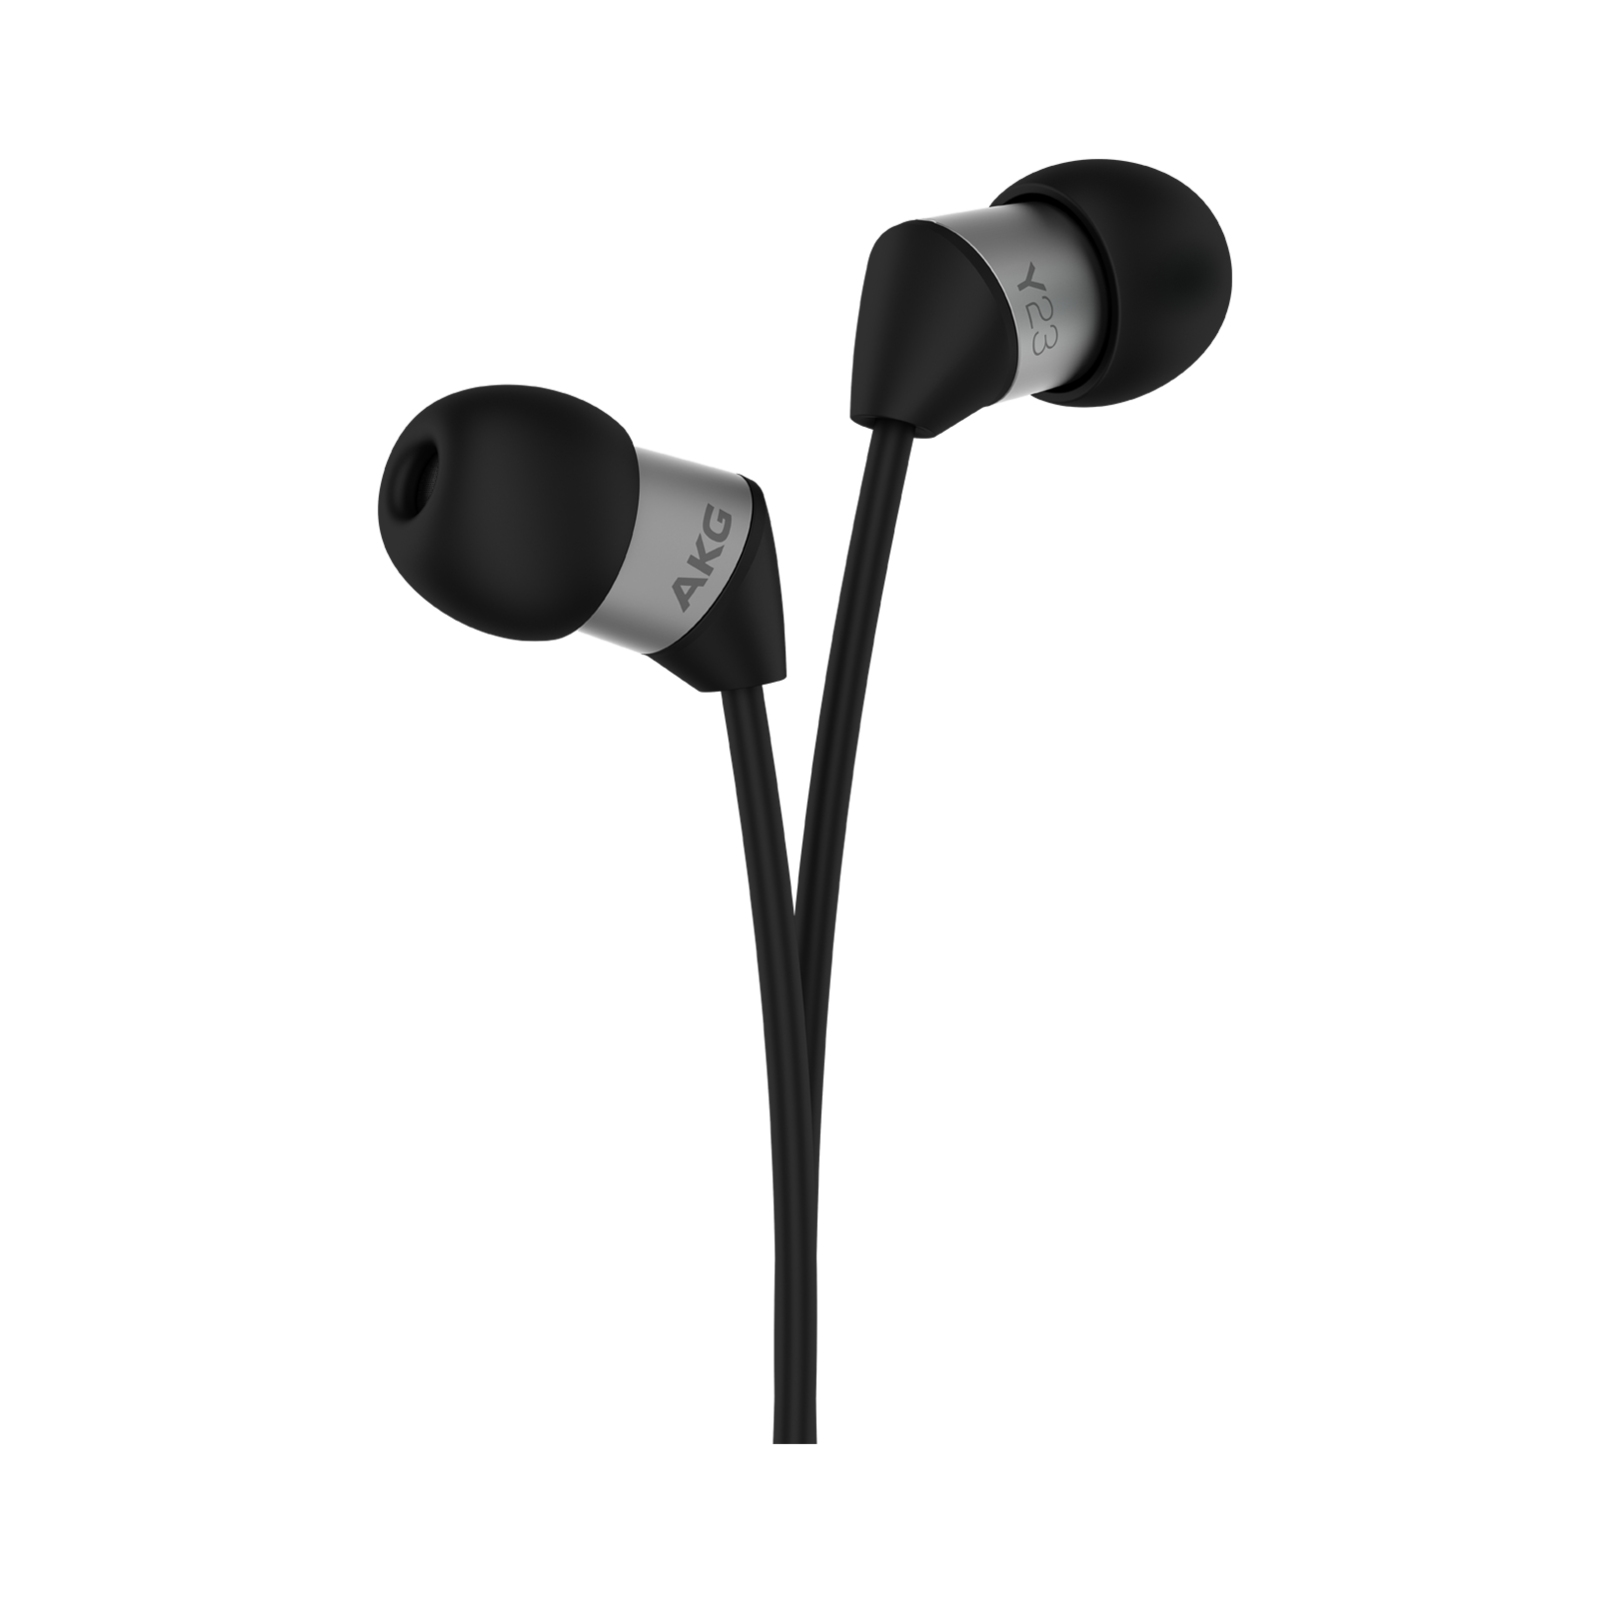 Y23U - Black - The smallest in-ear headphones with universal remote and microphone - Detailshot 1